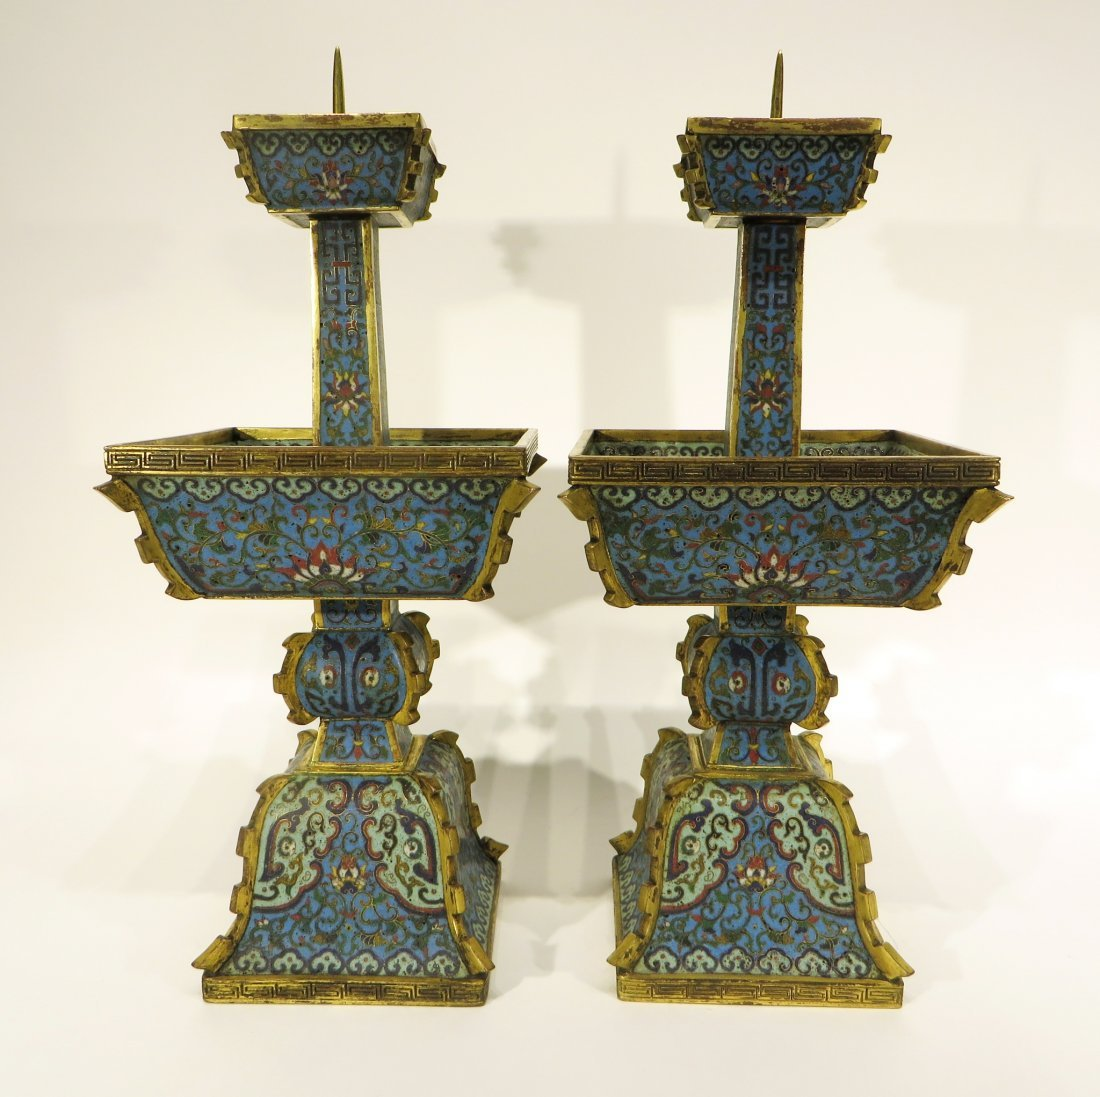 PAIR OF CHINESE CLOISONNE CANDLE STANDS - 2